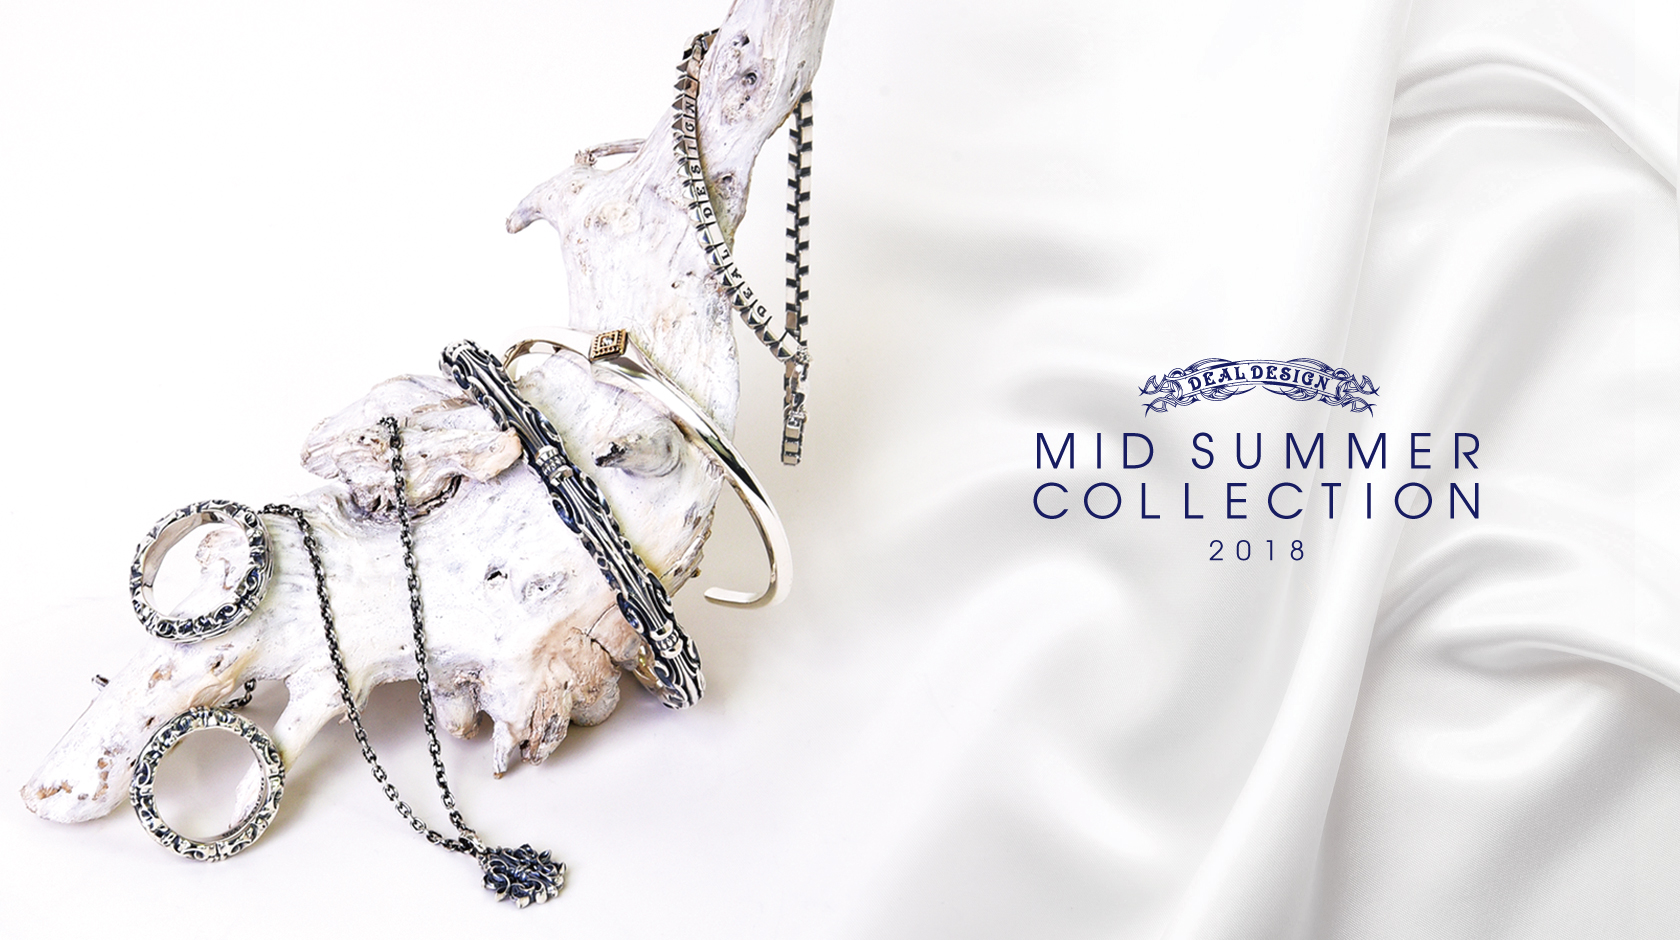 2018 Mid Summer Collection